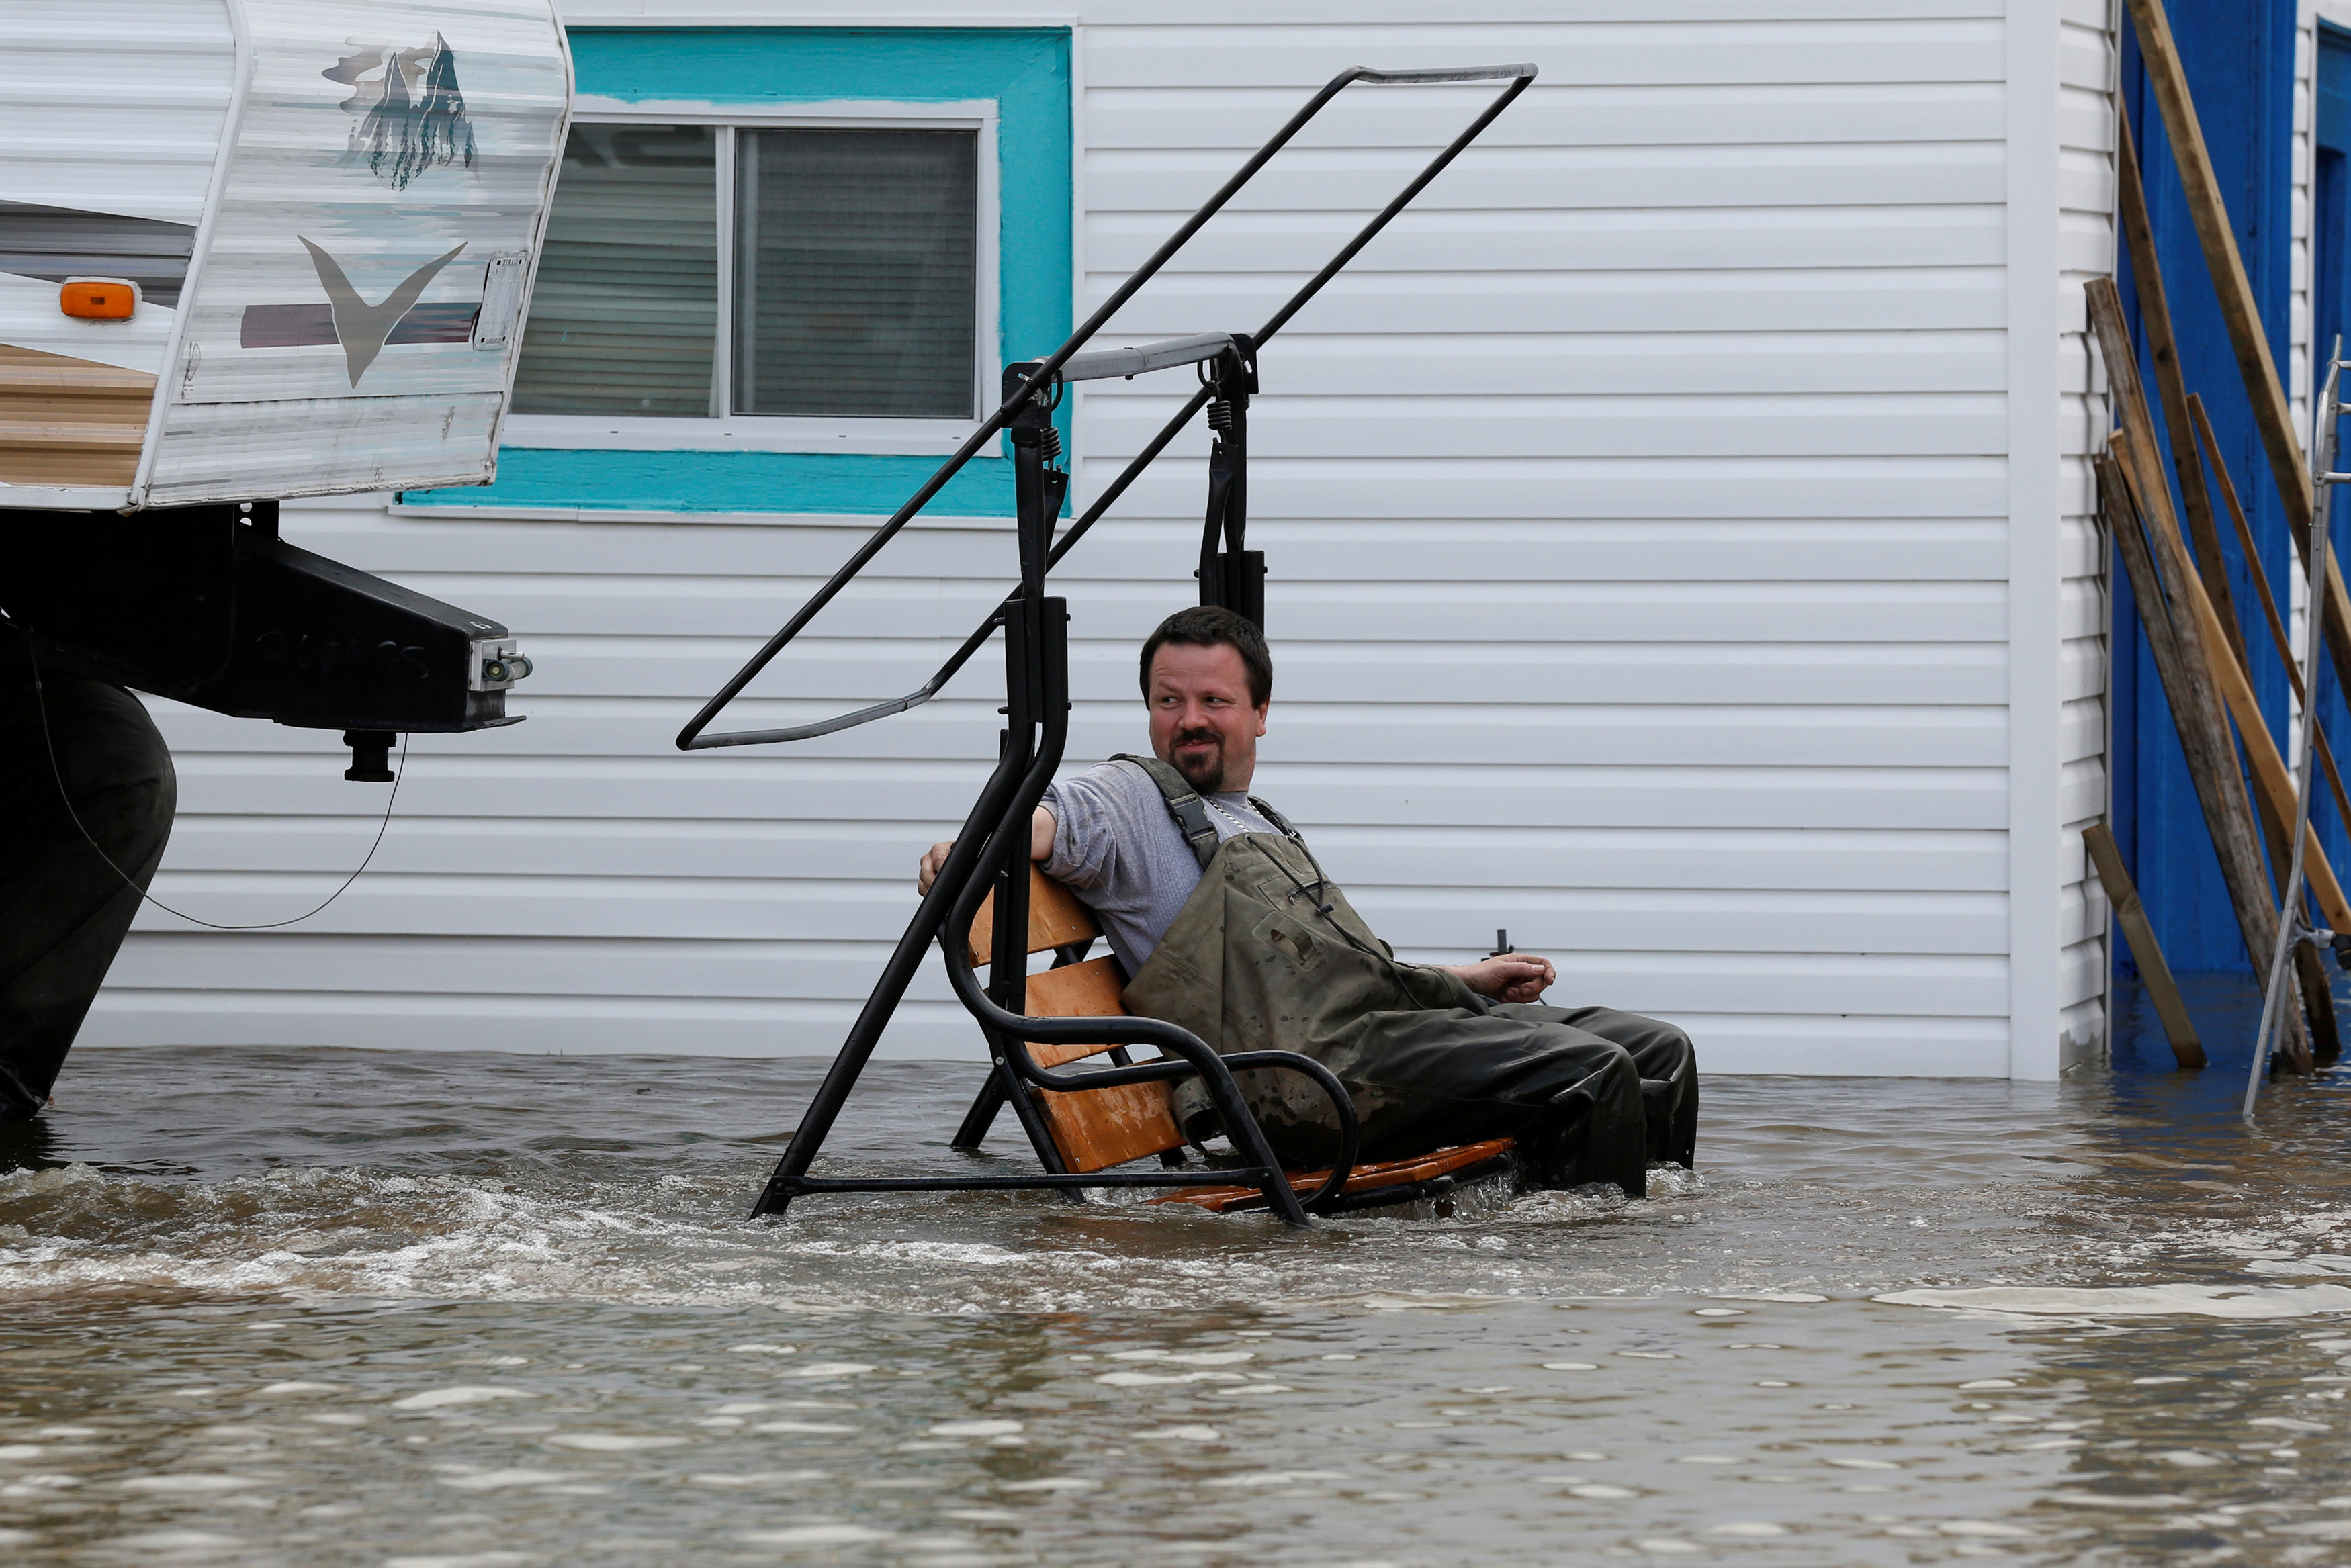 A resident sits on a swing in a flooded residential area in Rigaud, Quebec, Canada